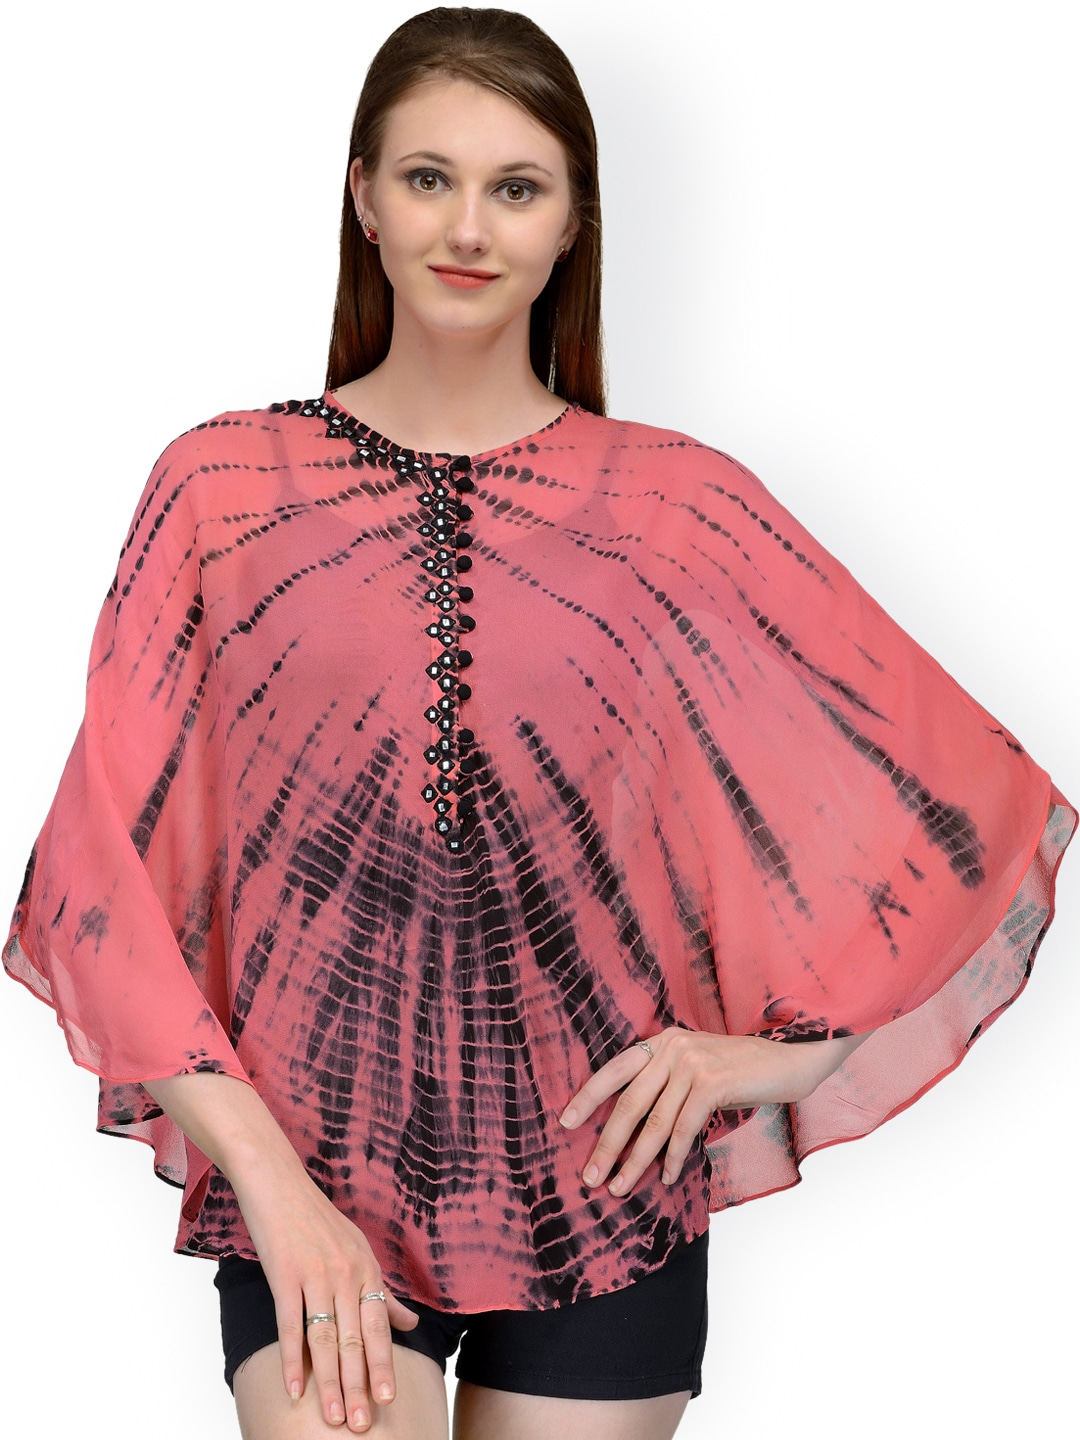 Bitterlime Pink Tie-Dyed Georgette Cape Top